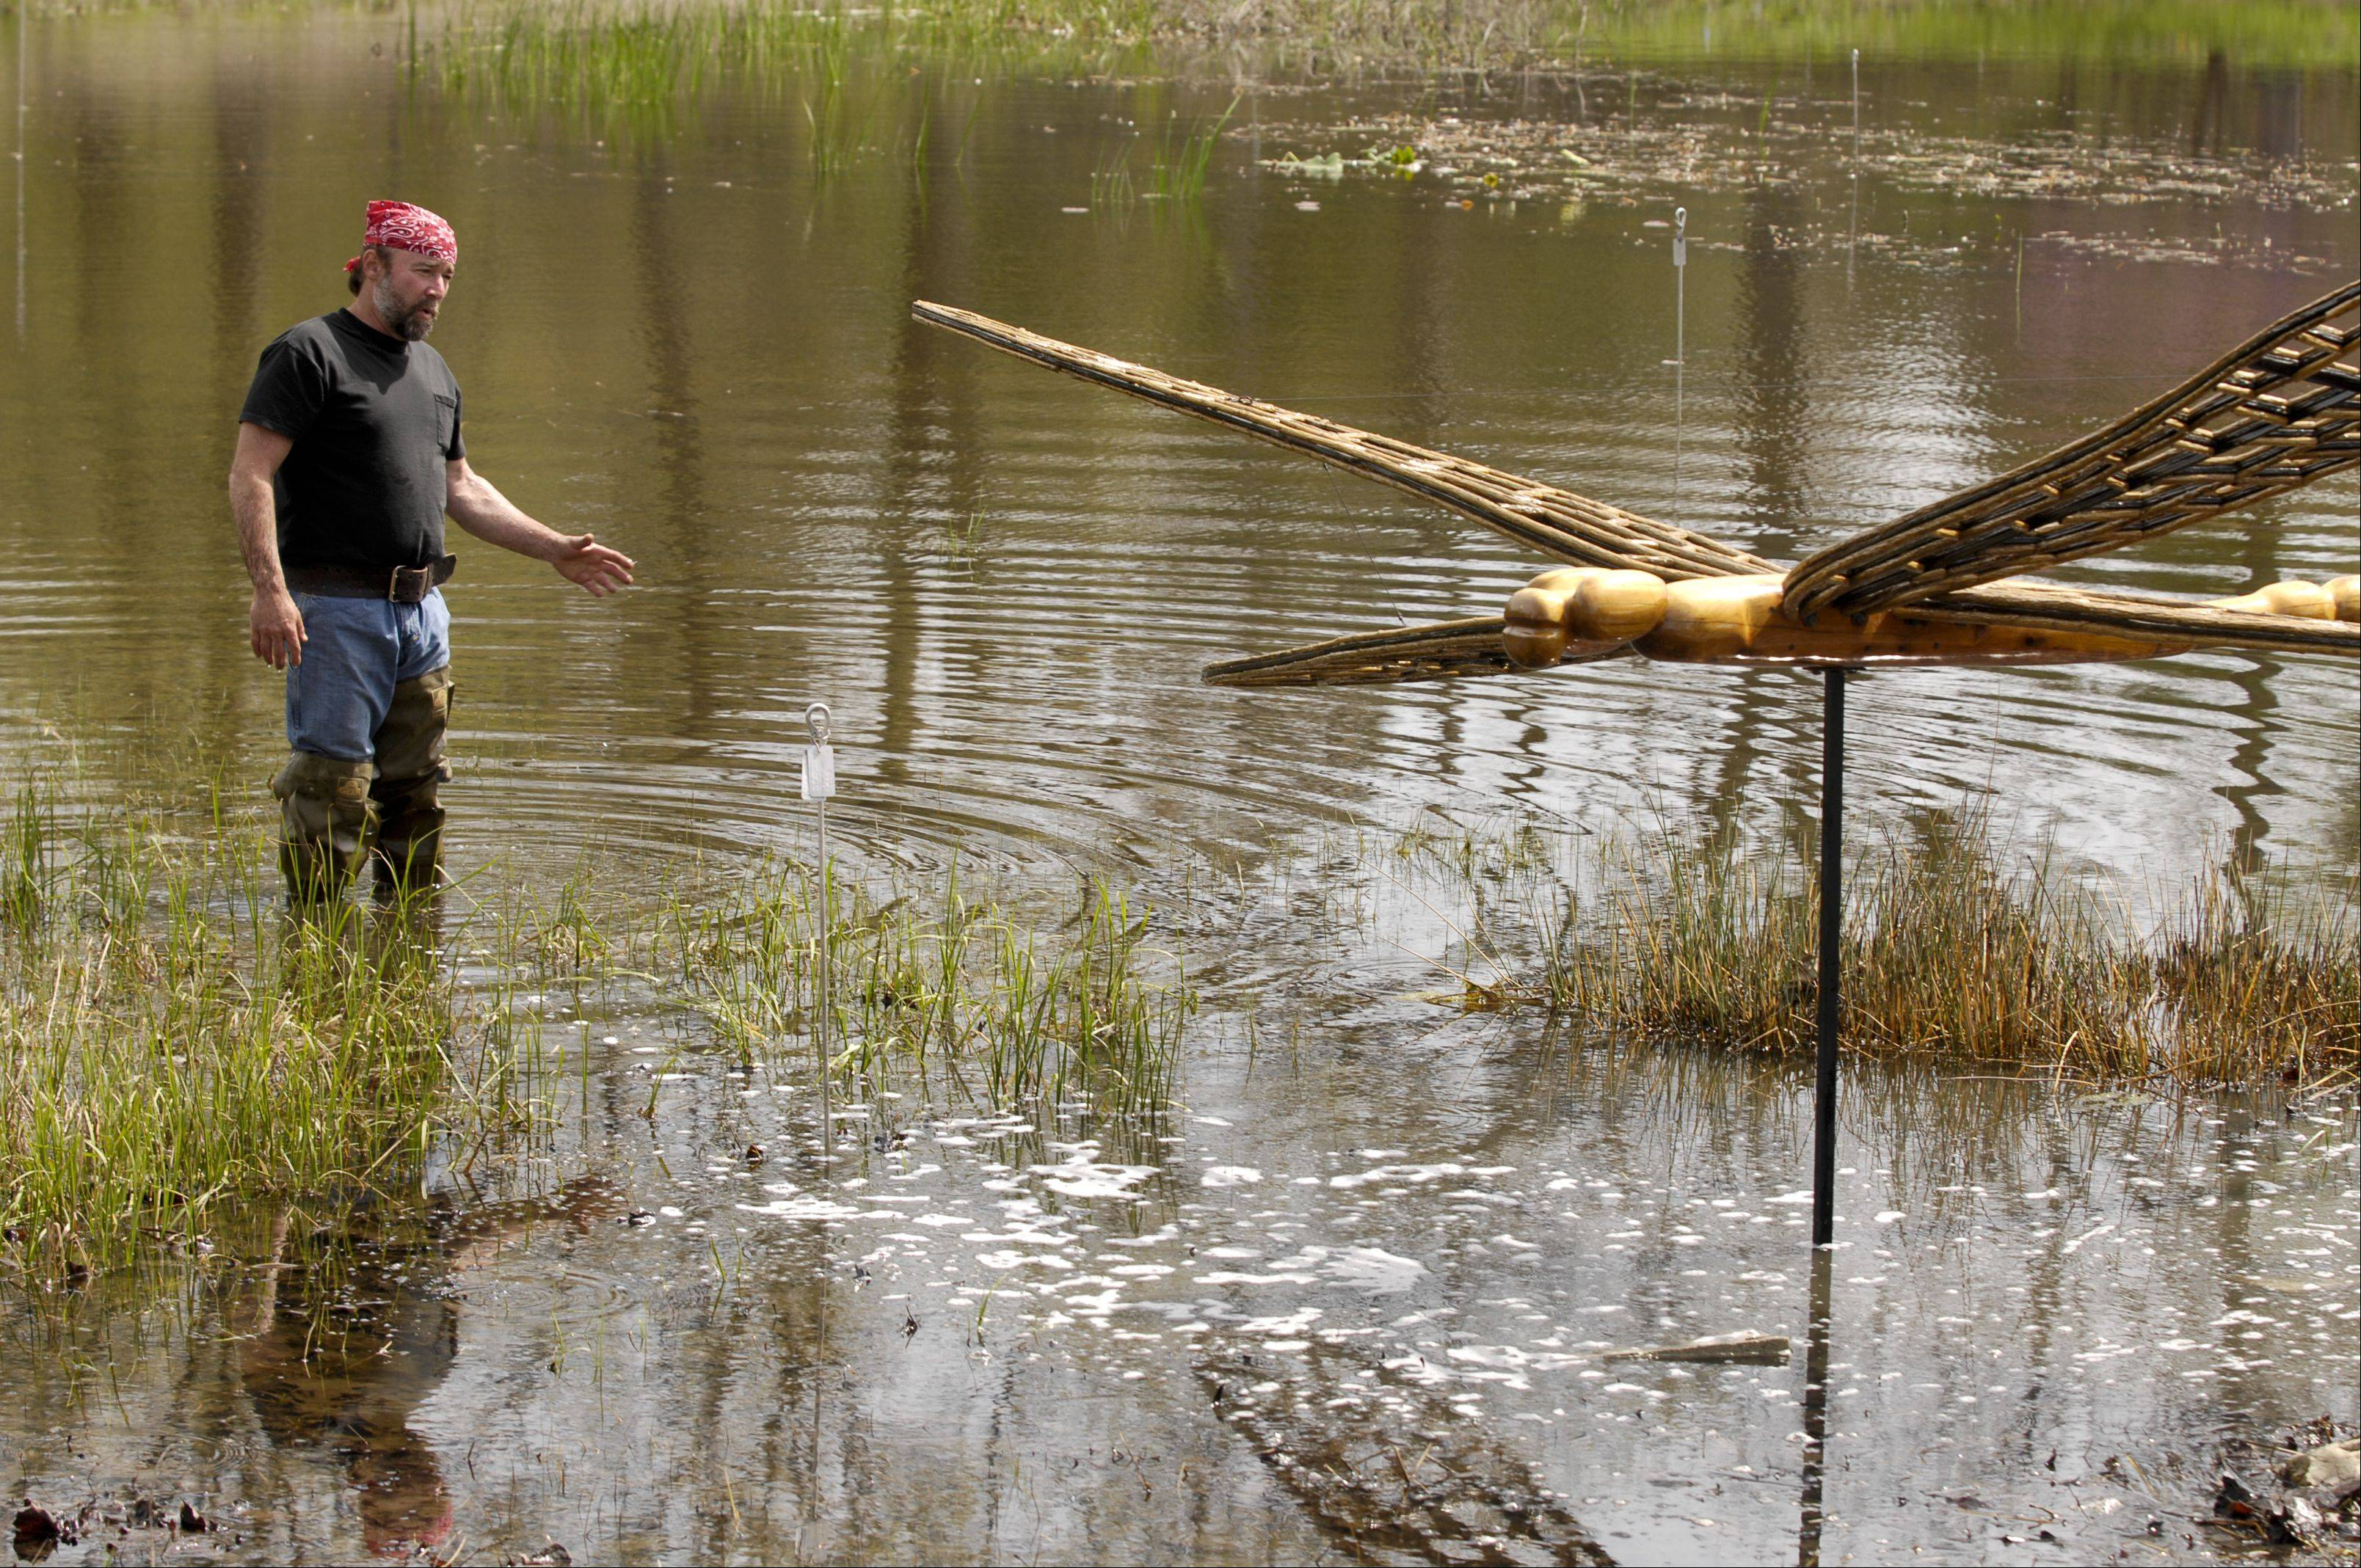 Artist David Rogers checks the placement of a dragonfly sculpture as he sets up his exhibition at the Morton Arboretum.